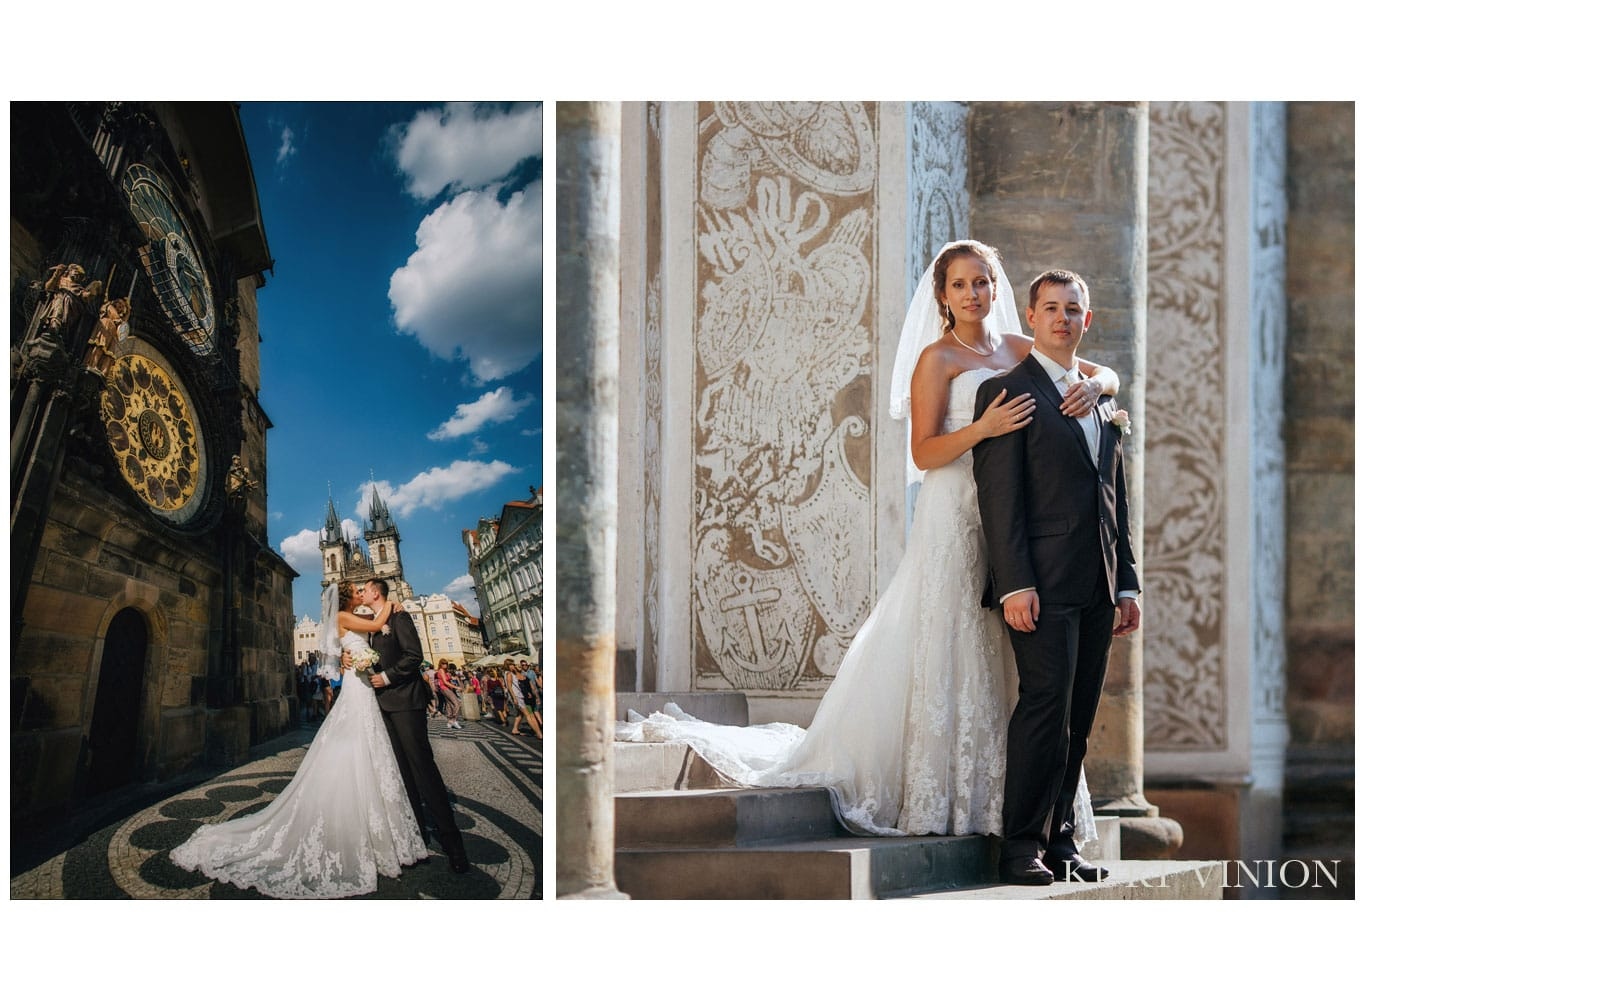 Castle Konopiste wedding / Oksana & Vladislav wedding day photography at Old Town Square